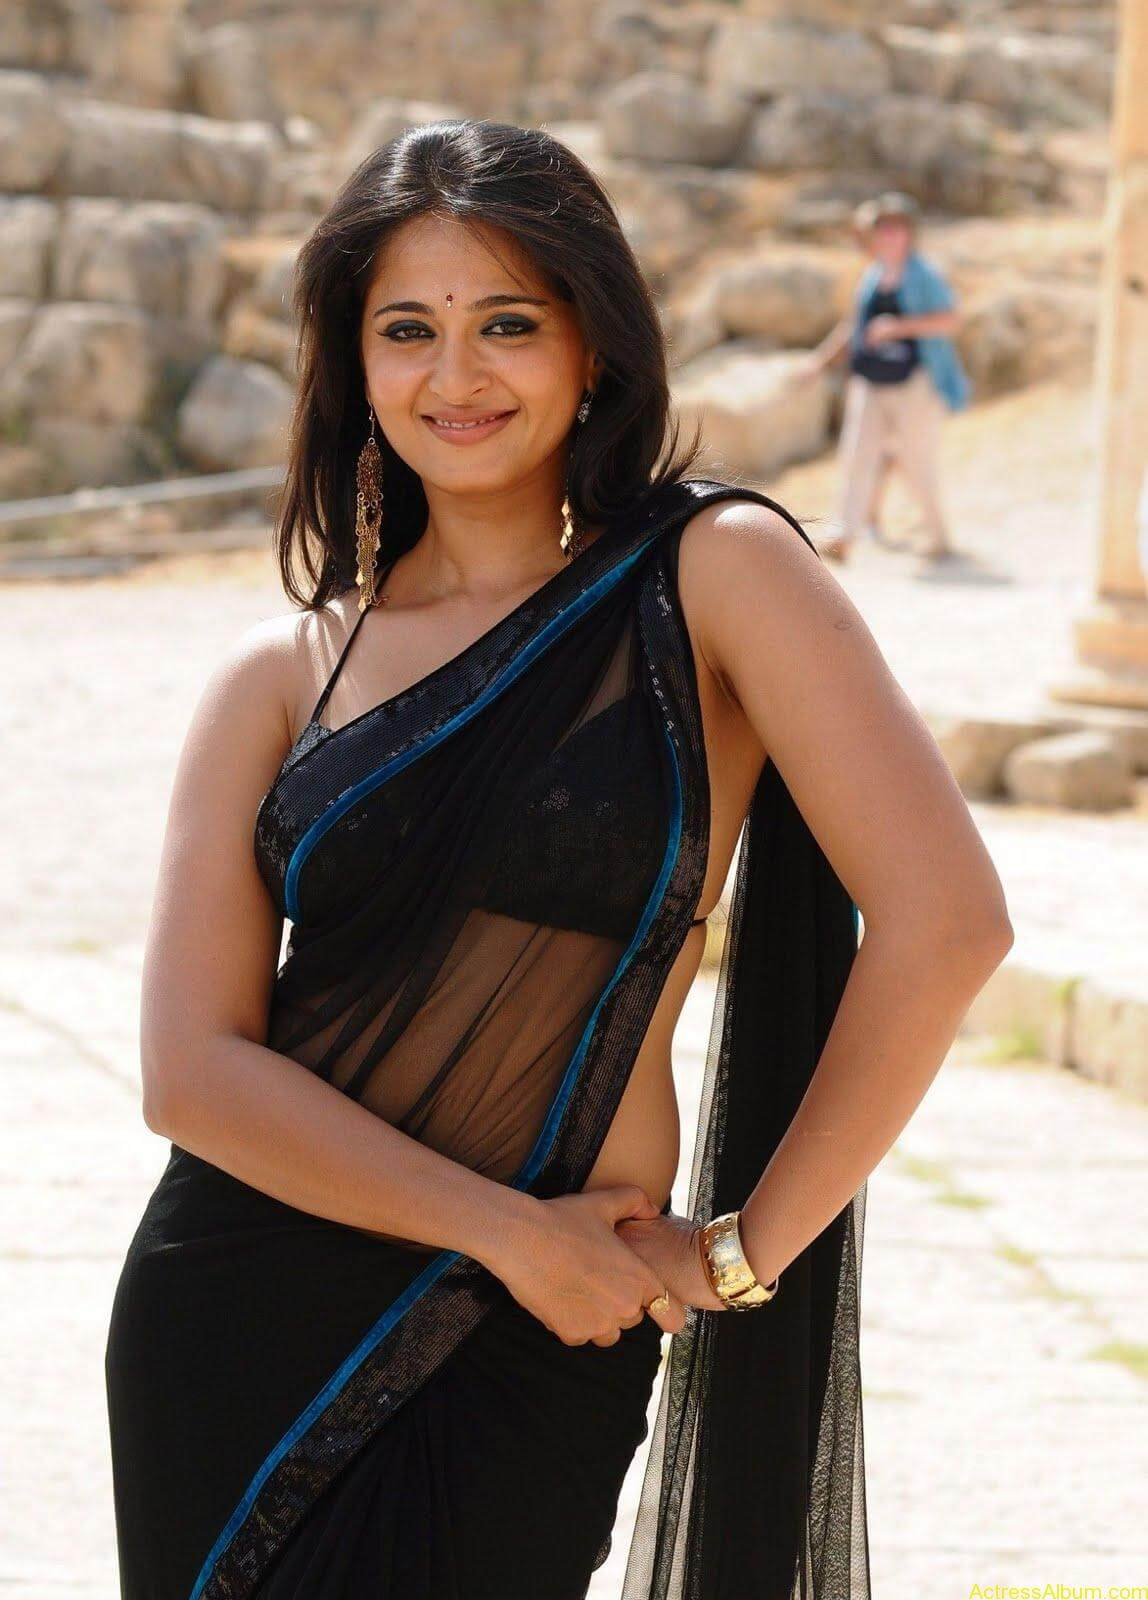 Anushka Shetty In Black Saree9